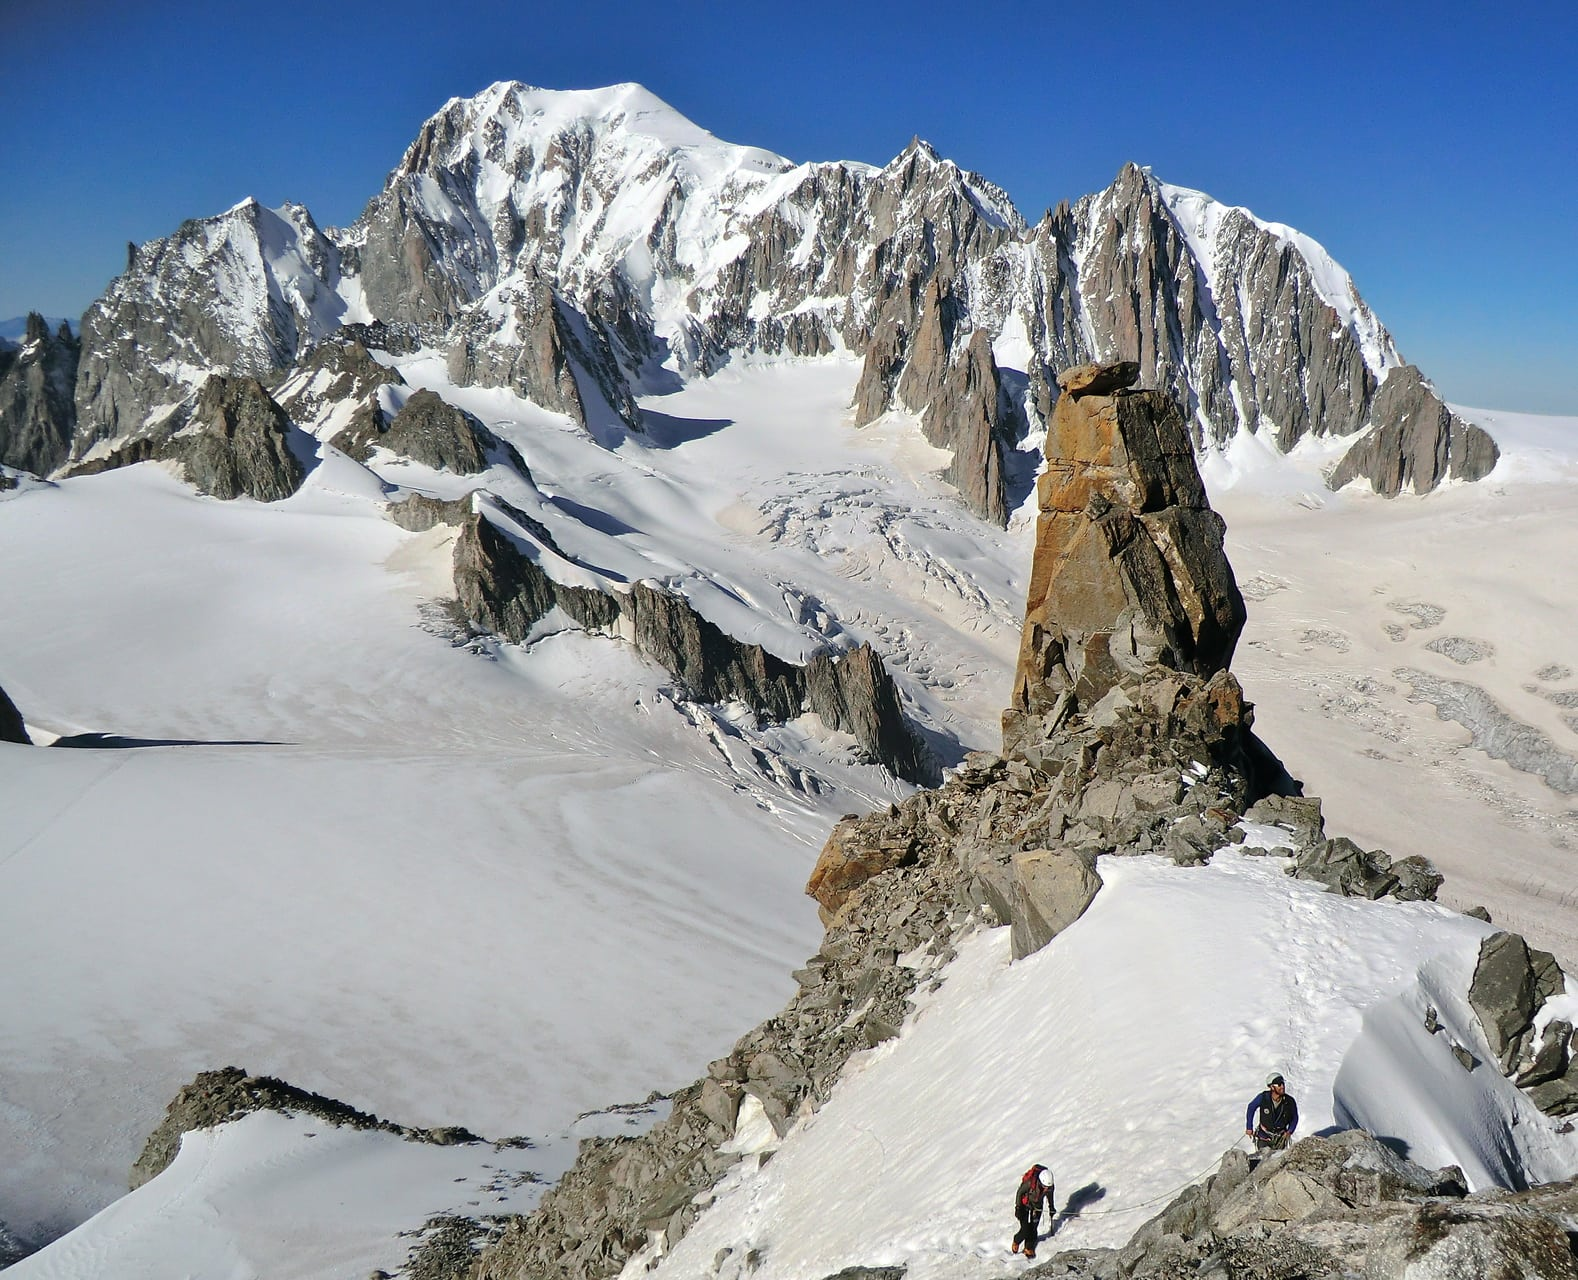 Ascension de la Dent du Géant